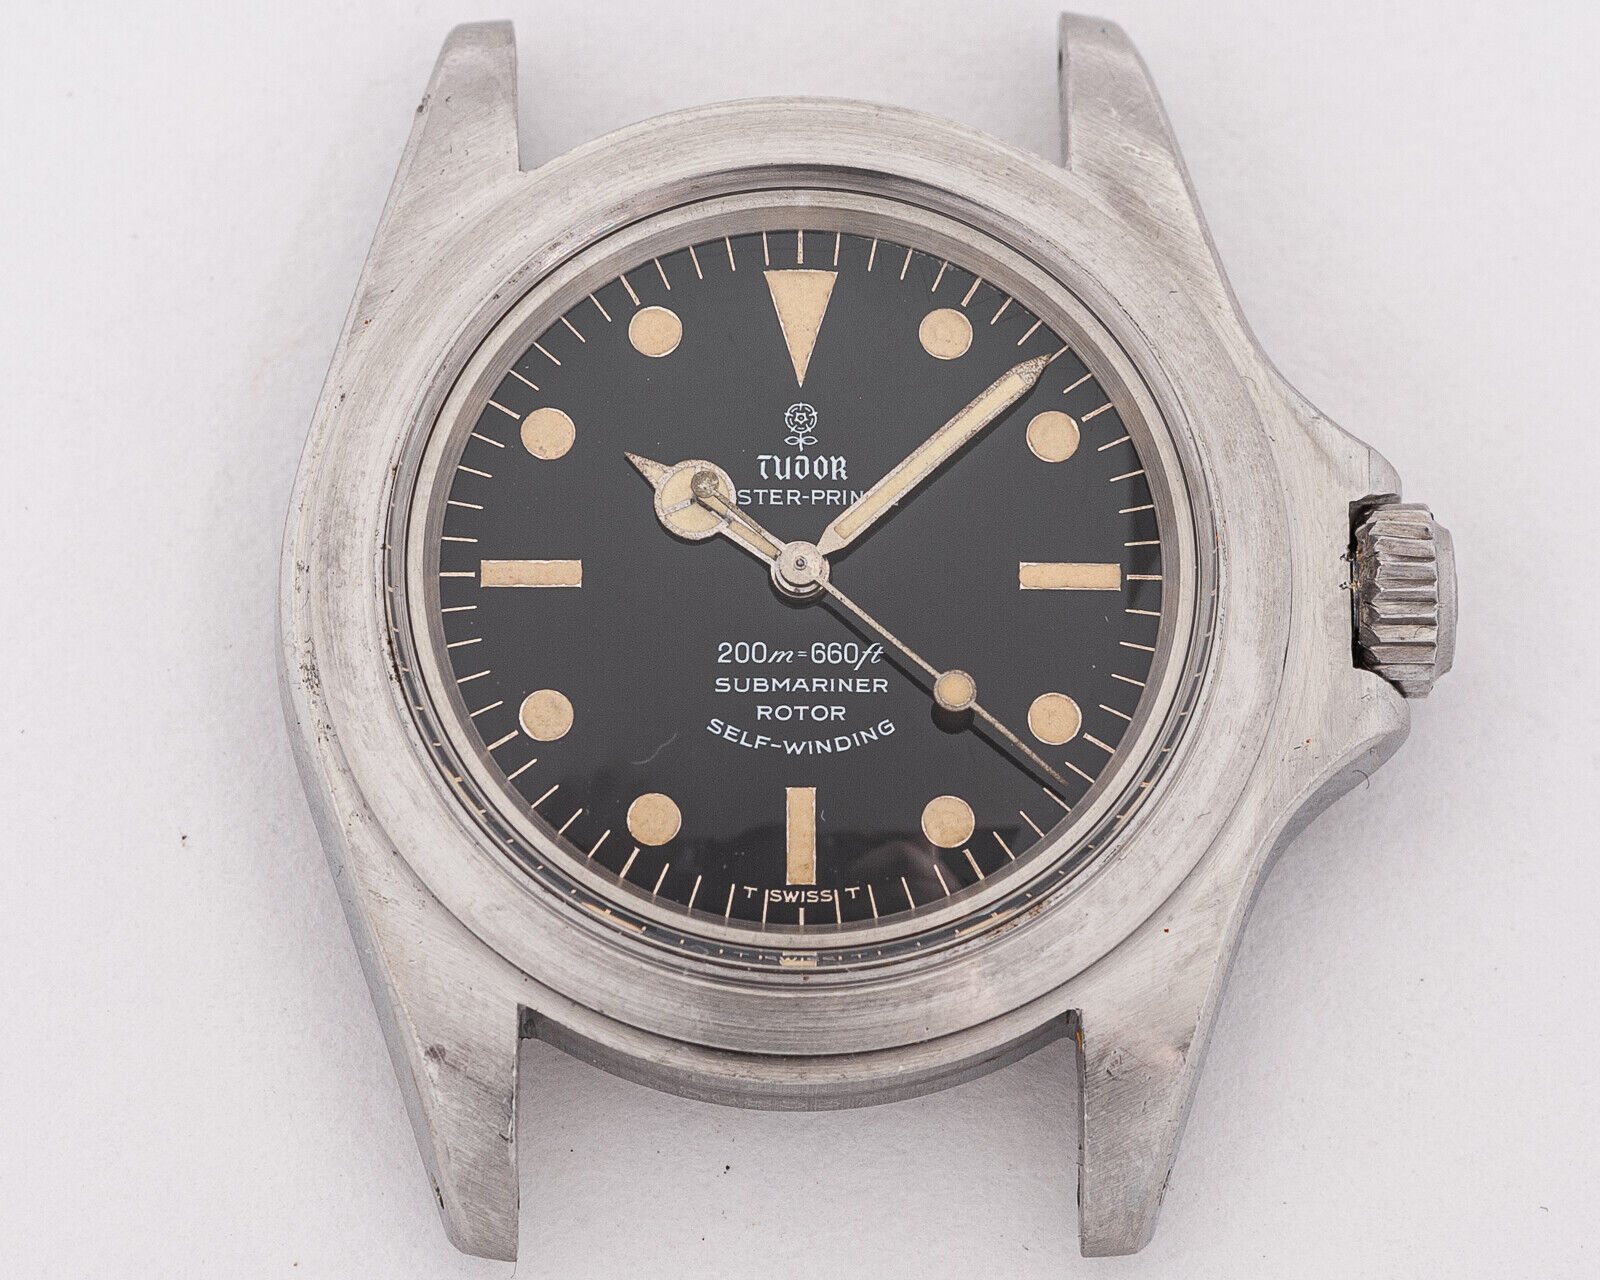 INCREDIBLE Vintage Tudor Oyster-Prince Submariner Ref. 7928 w/ NICE Glossy Dial! - watch picture 1